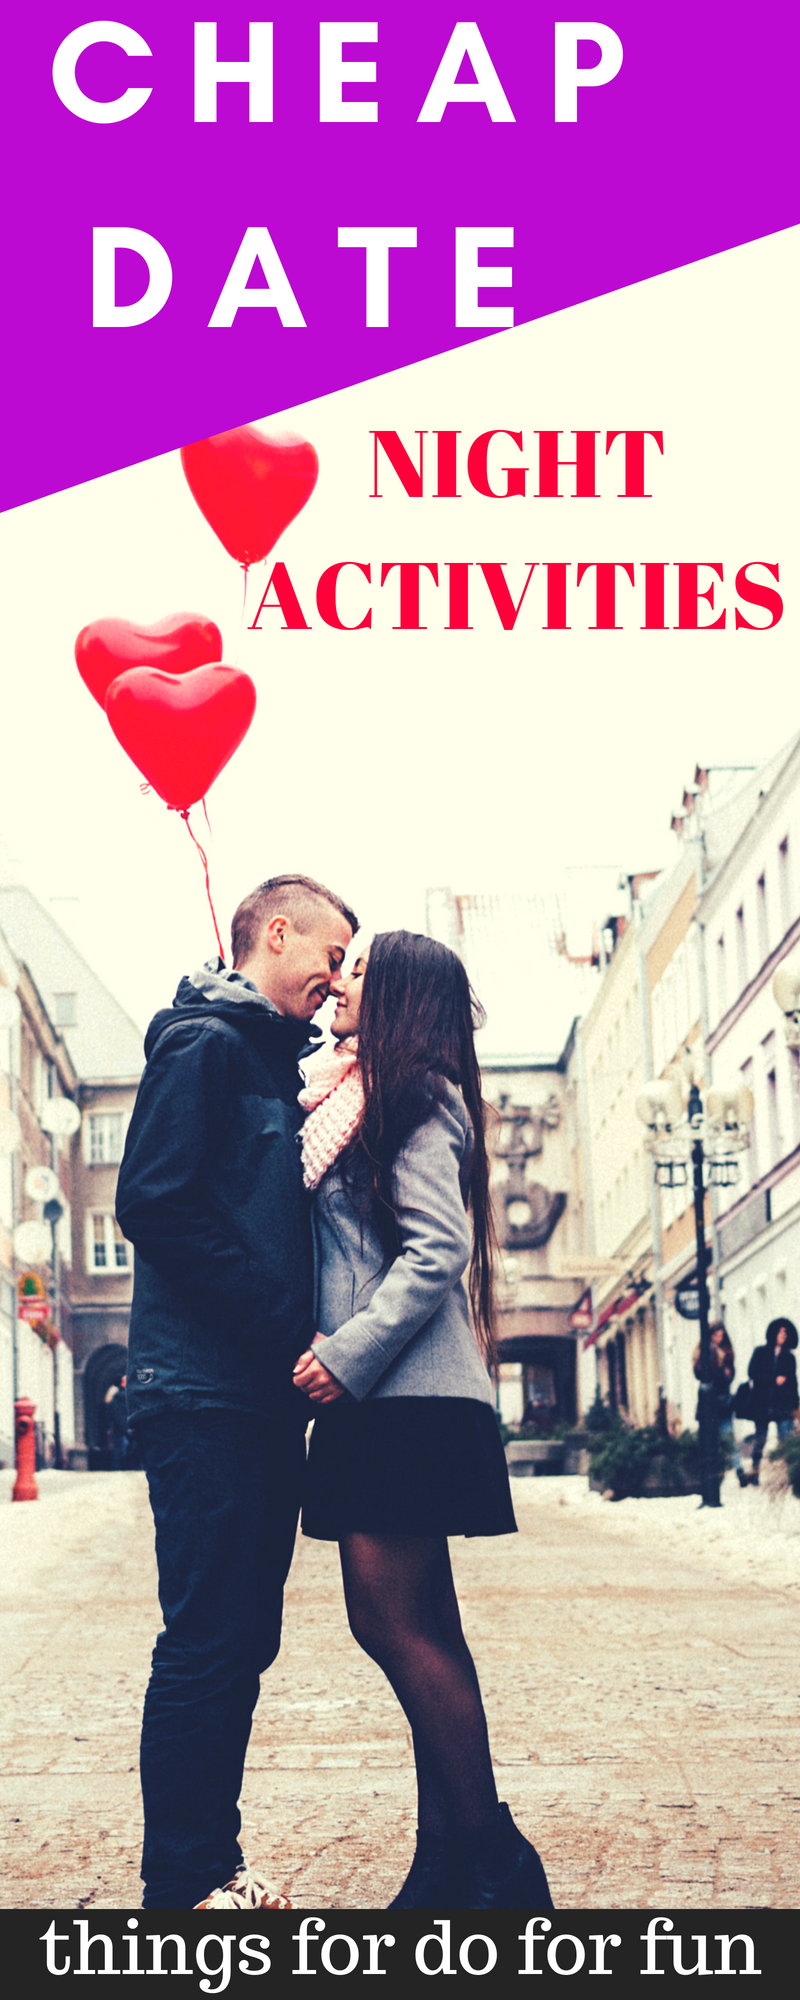 date night ideas for couples -creative date ideas that are actually